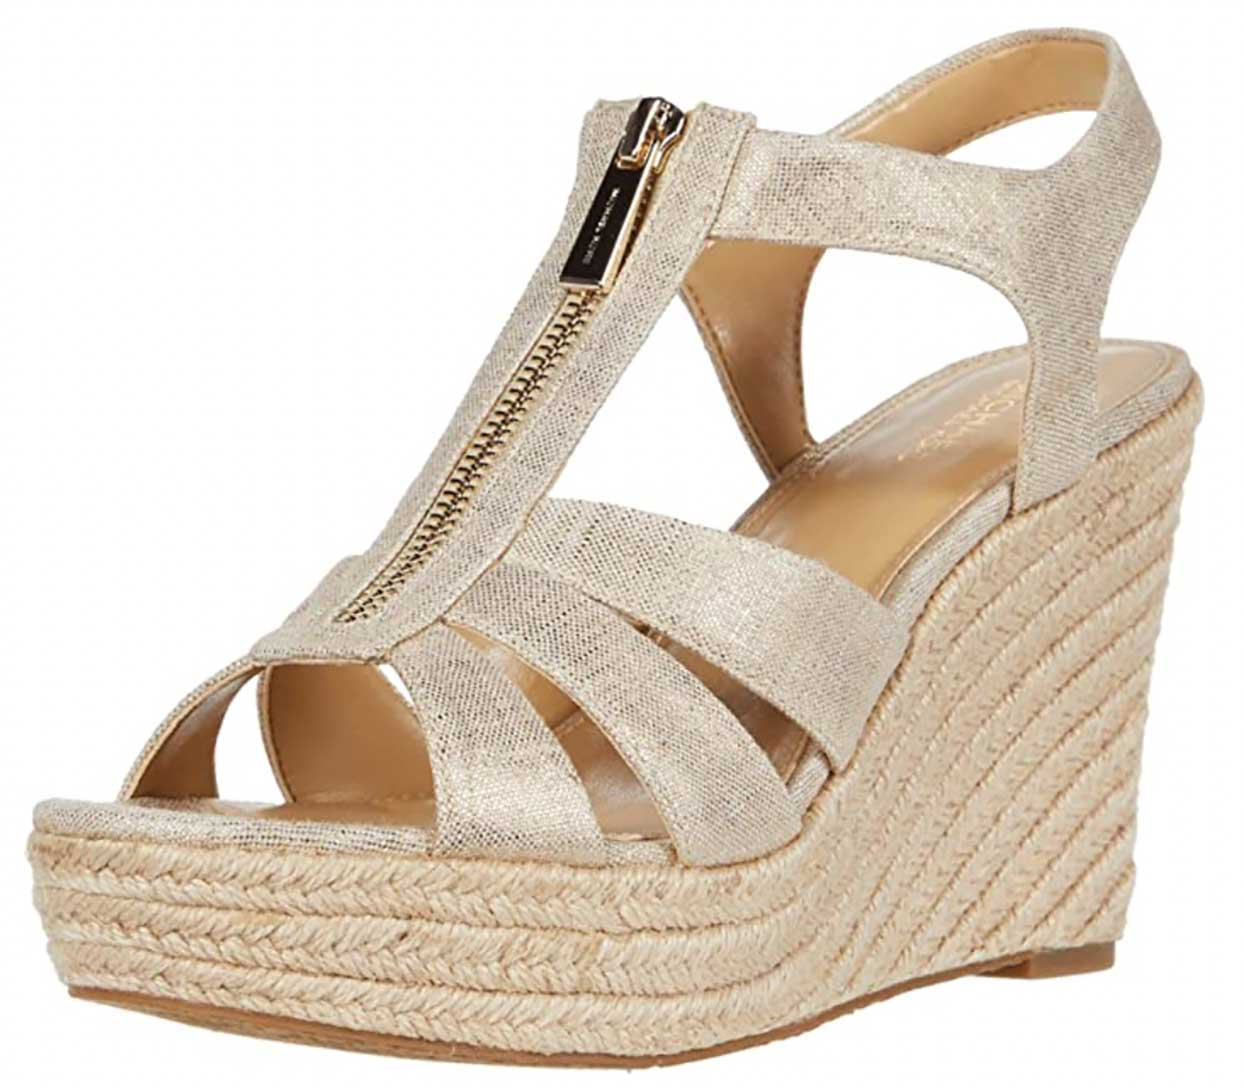 Michael Kors Berkley Wedge Pale Gold